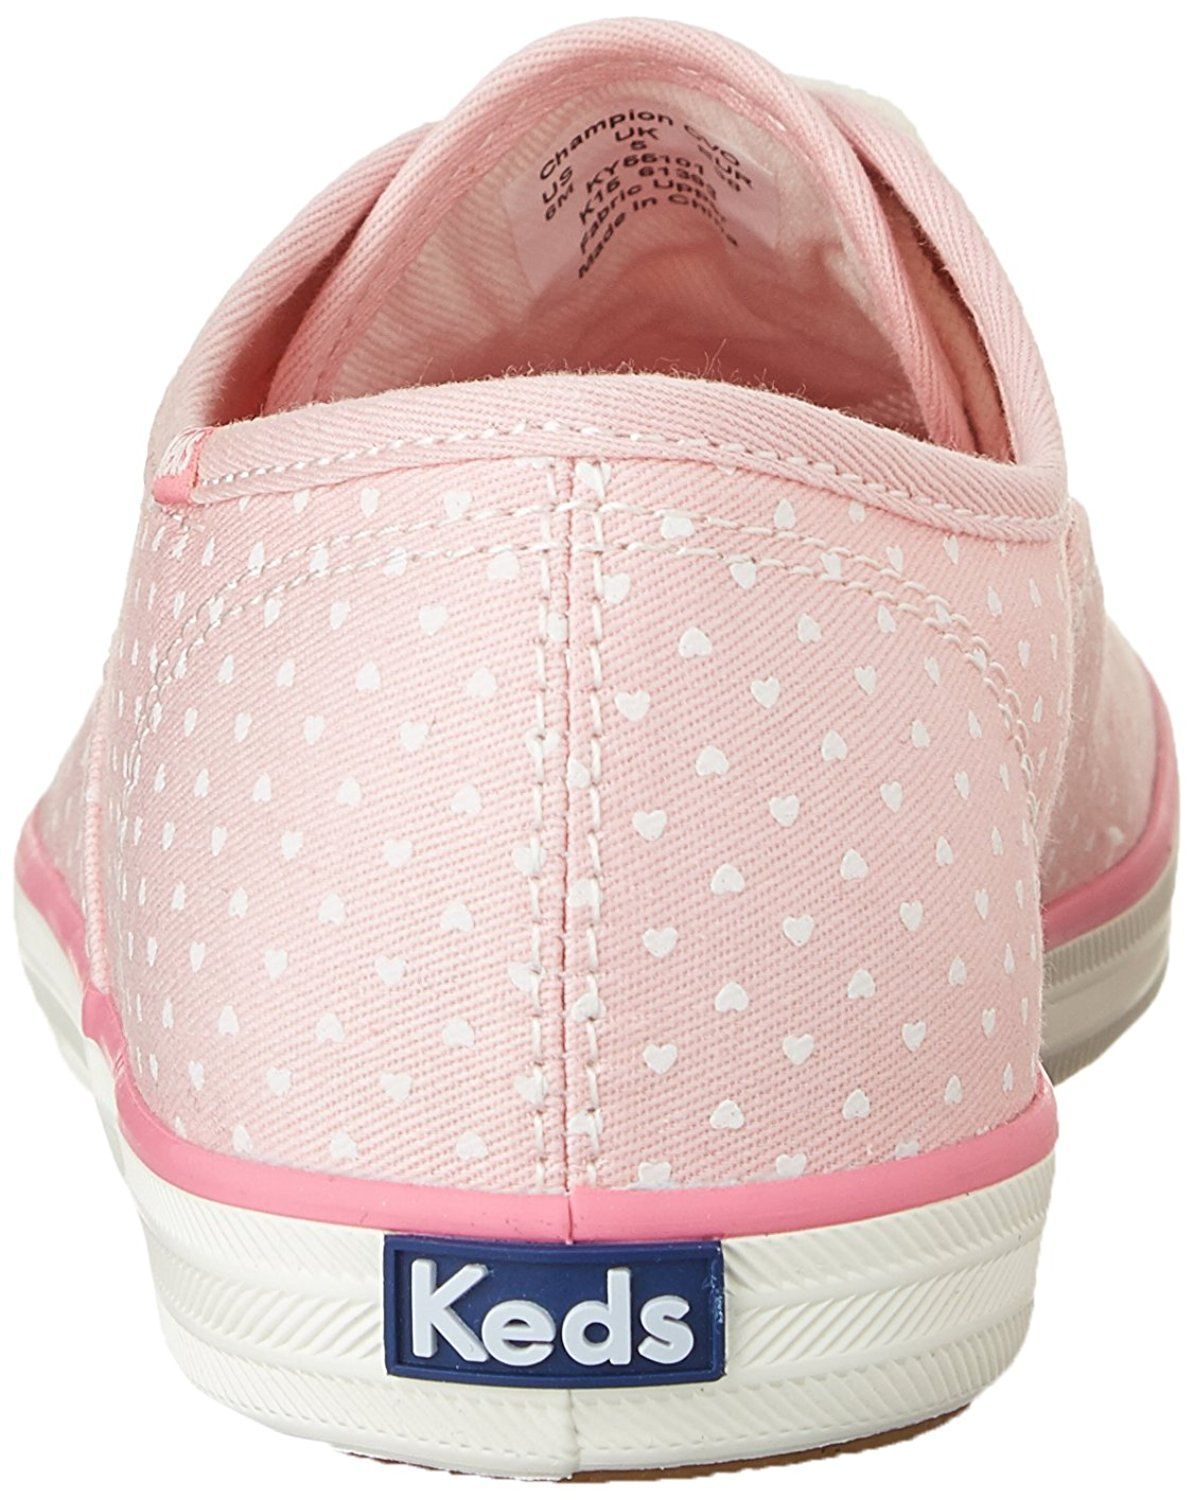 cd5c82d00c9457 Keds Shoes Shoes  Buy Online from Fishpond.com.hk